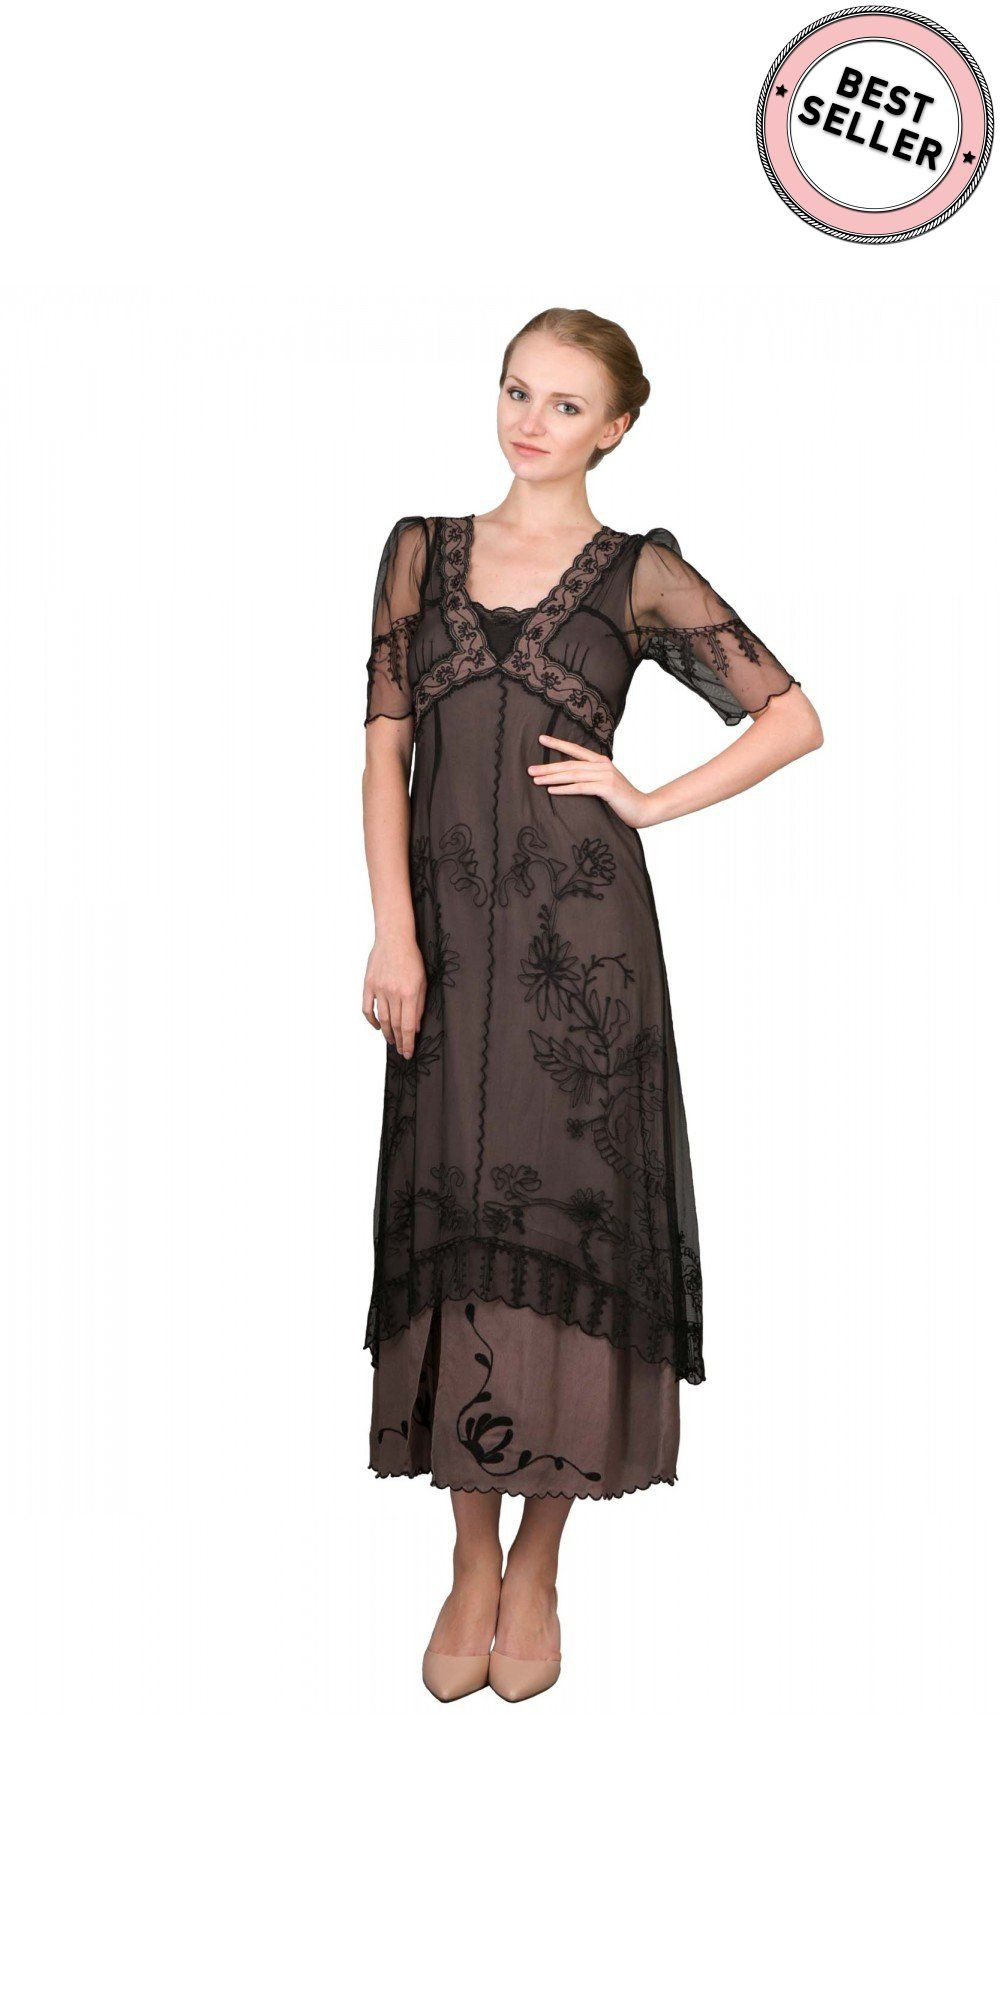 New Vintage Titanic Tea Party Dress In Black/coconataya